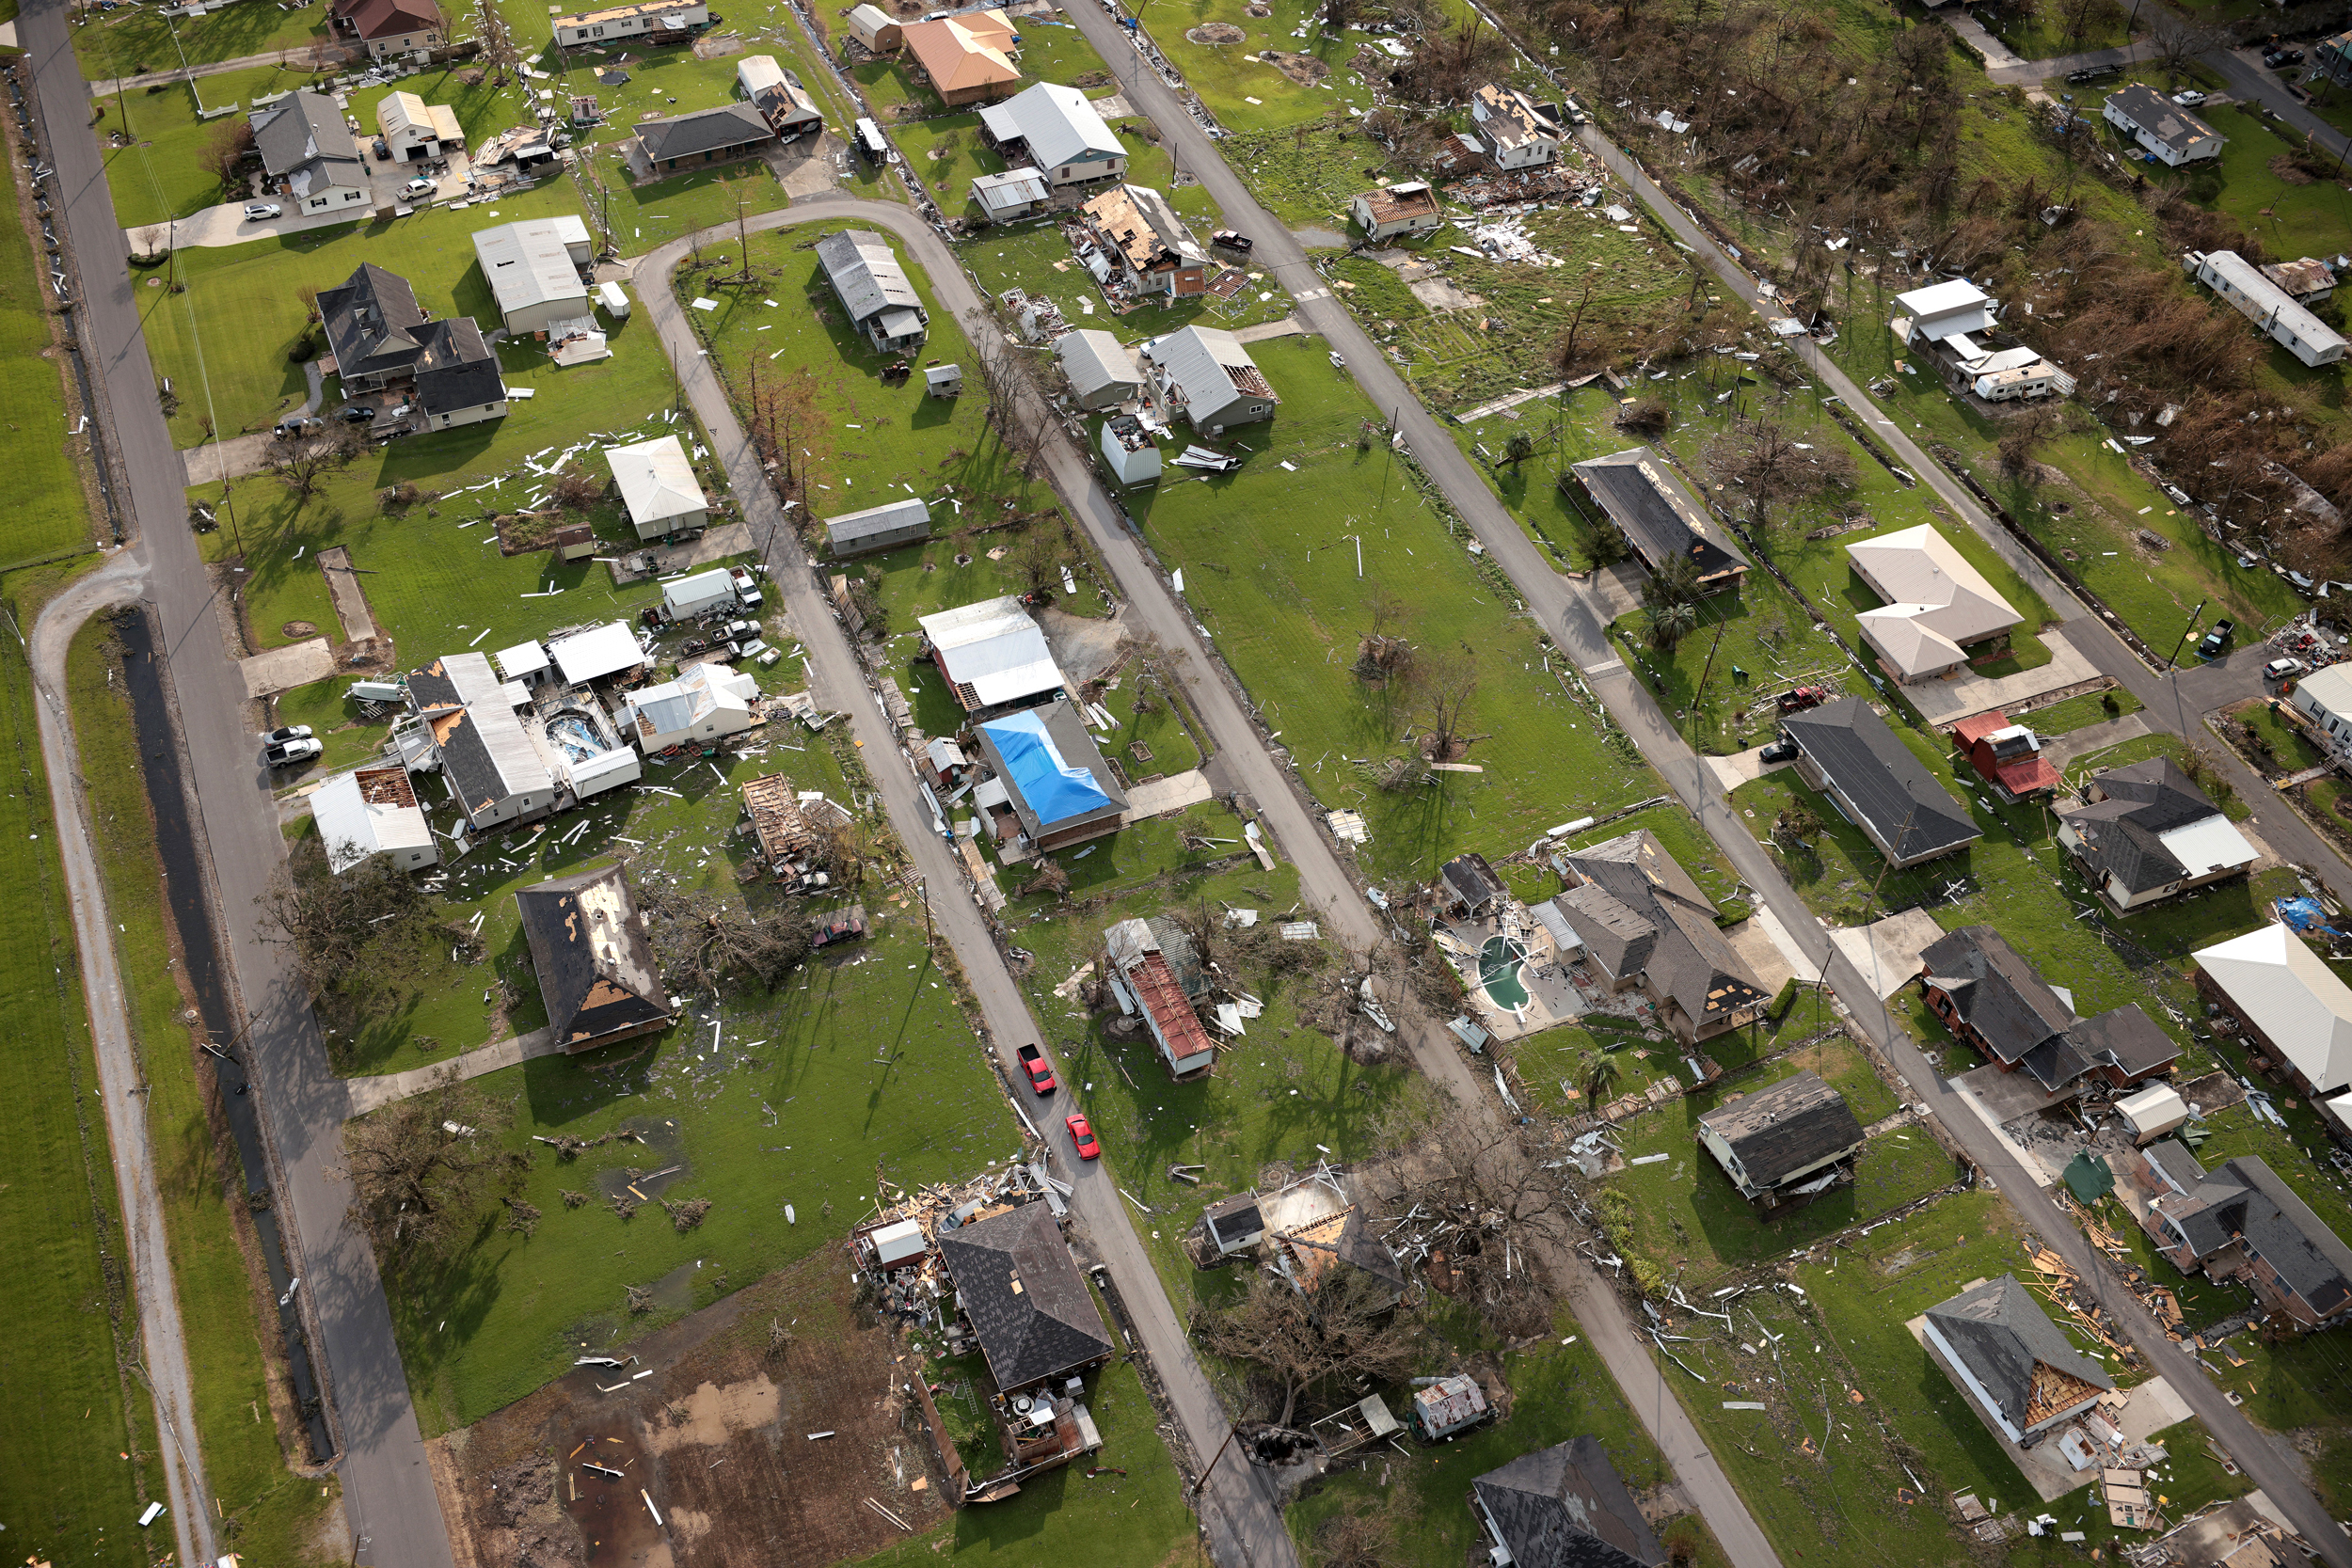 FEMA updates policy that prevented many Black families from receiving disaster aid